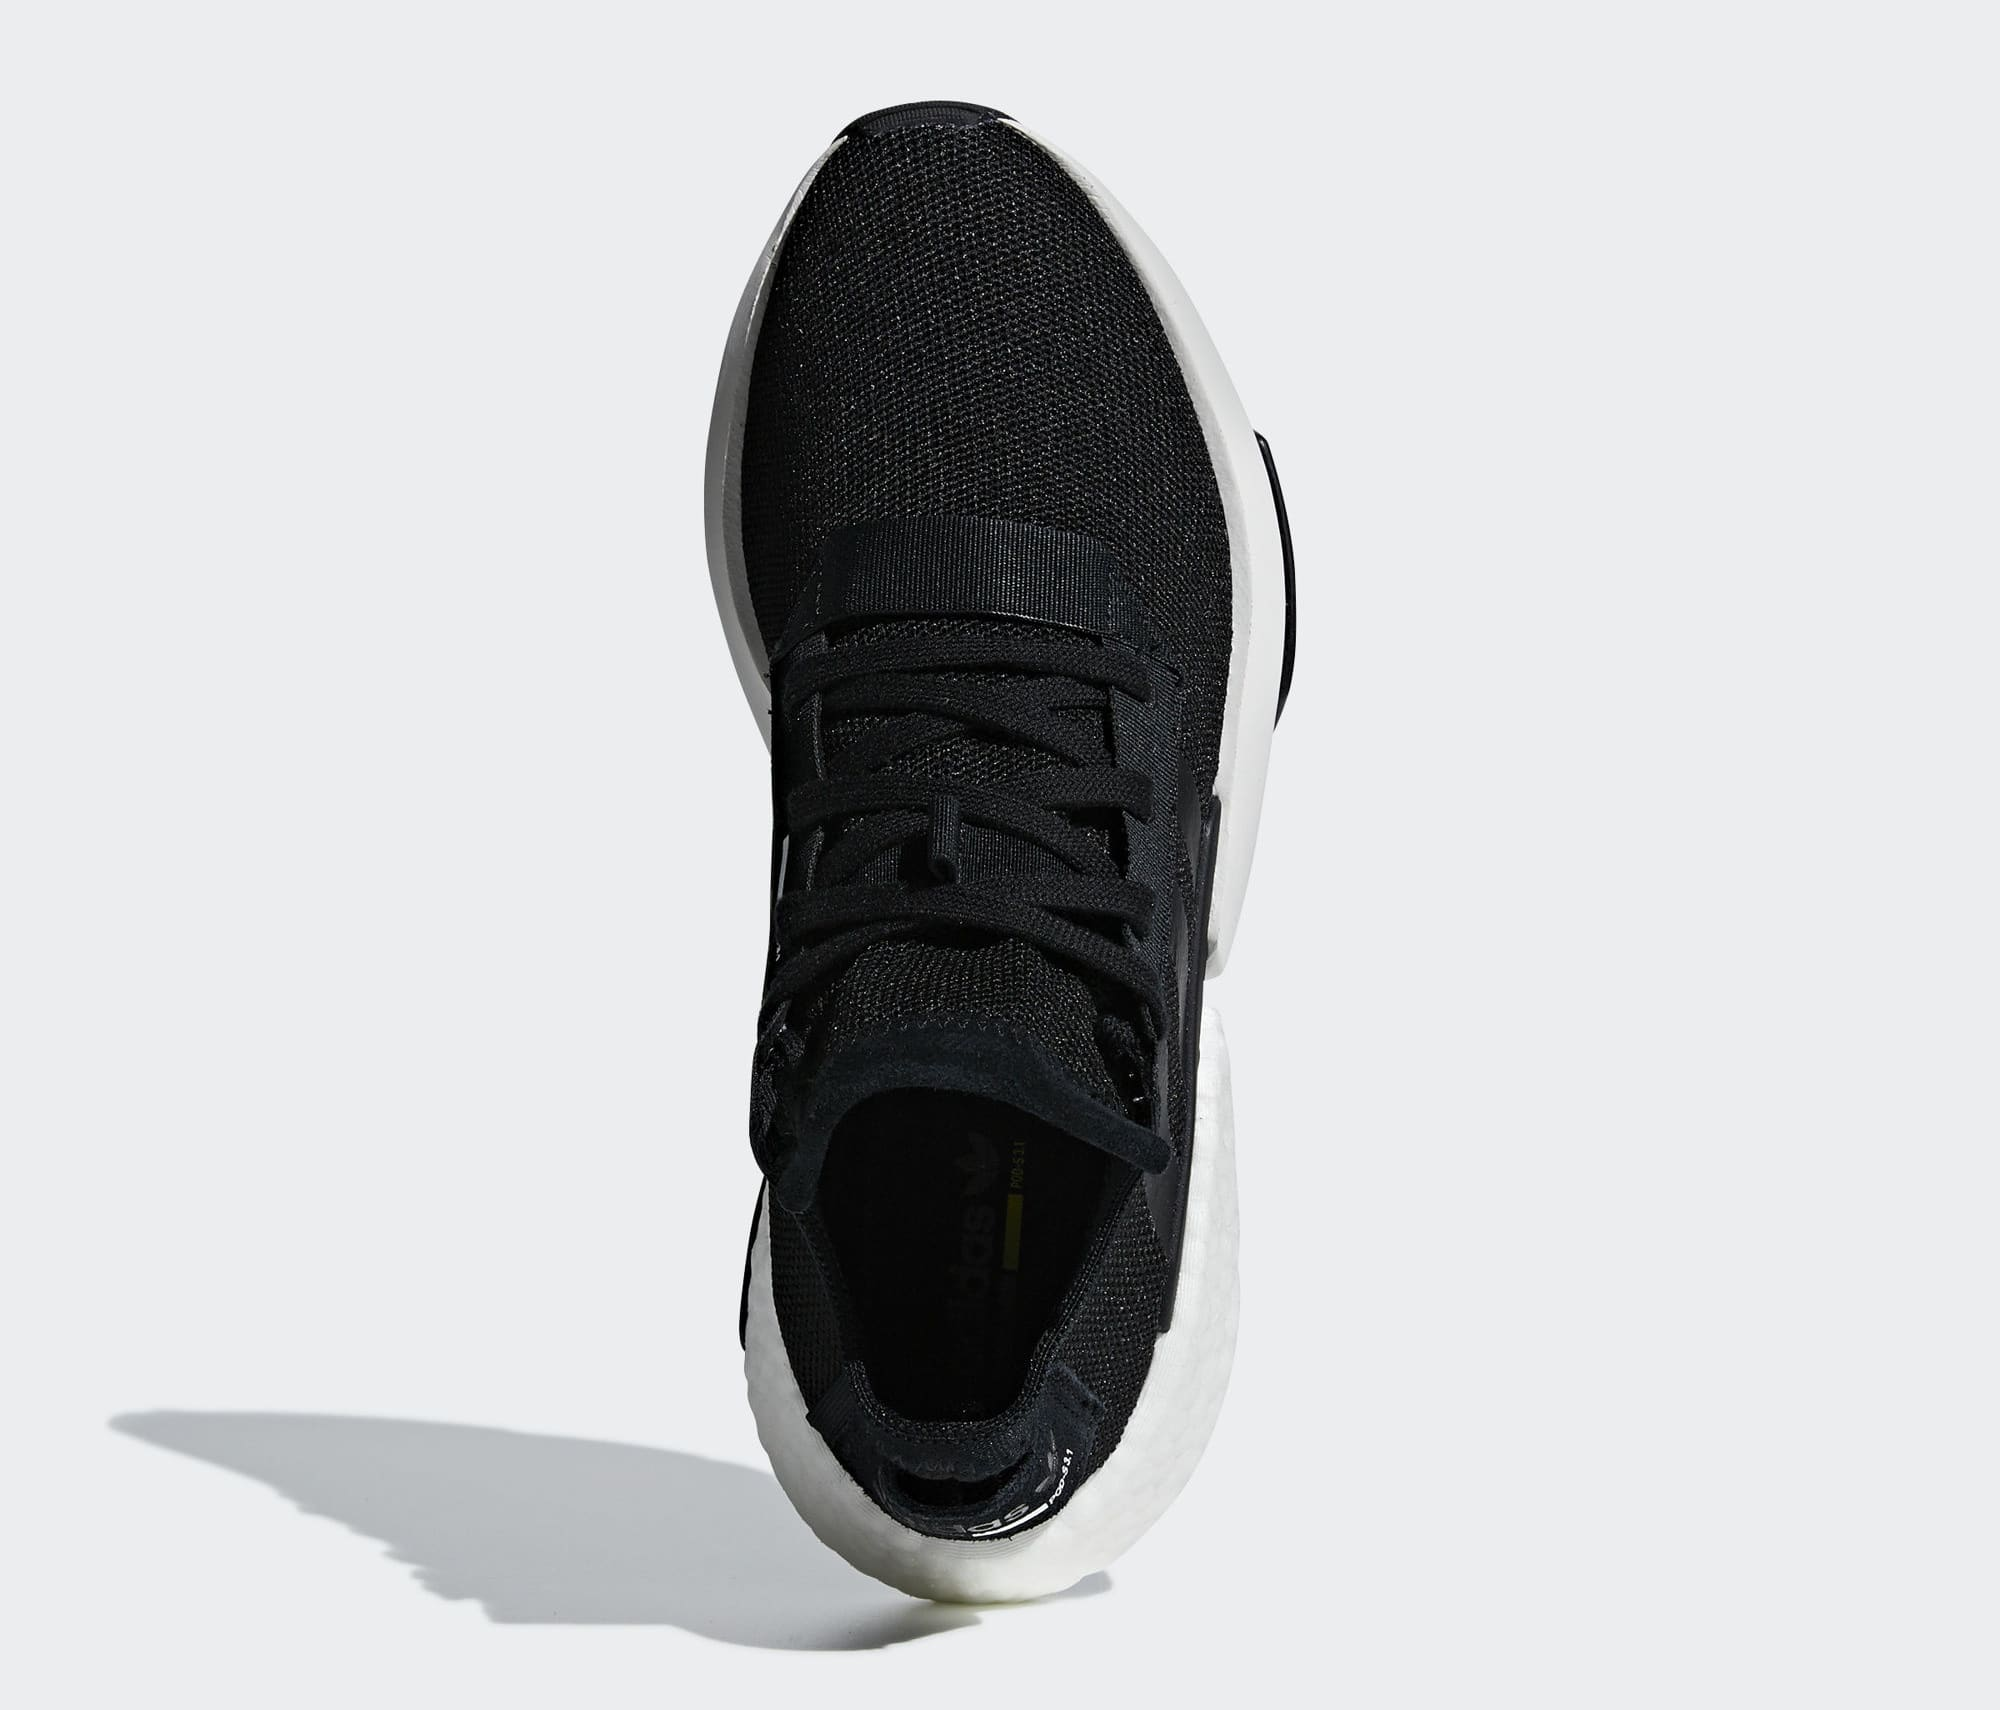 Adidas P.O.D. System Black/White B37366 (Top)